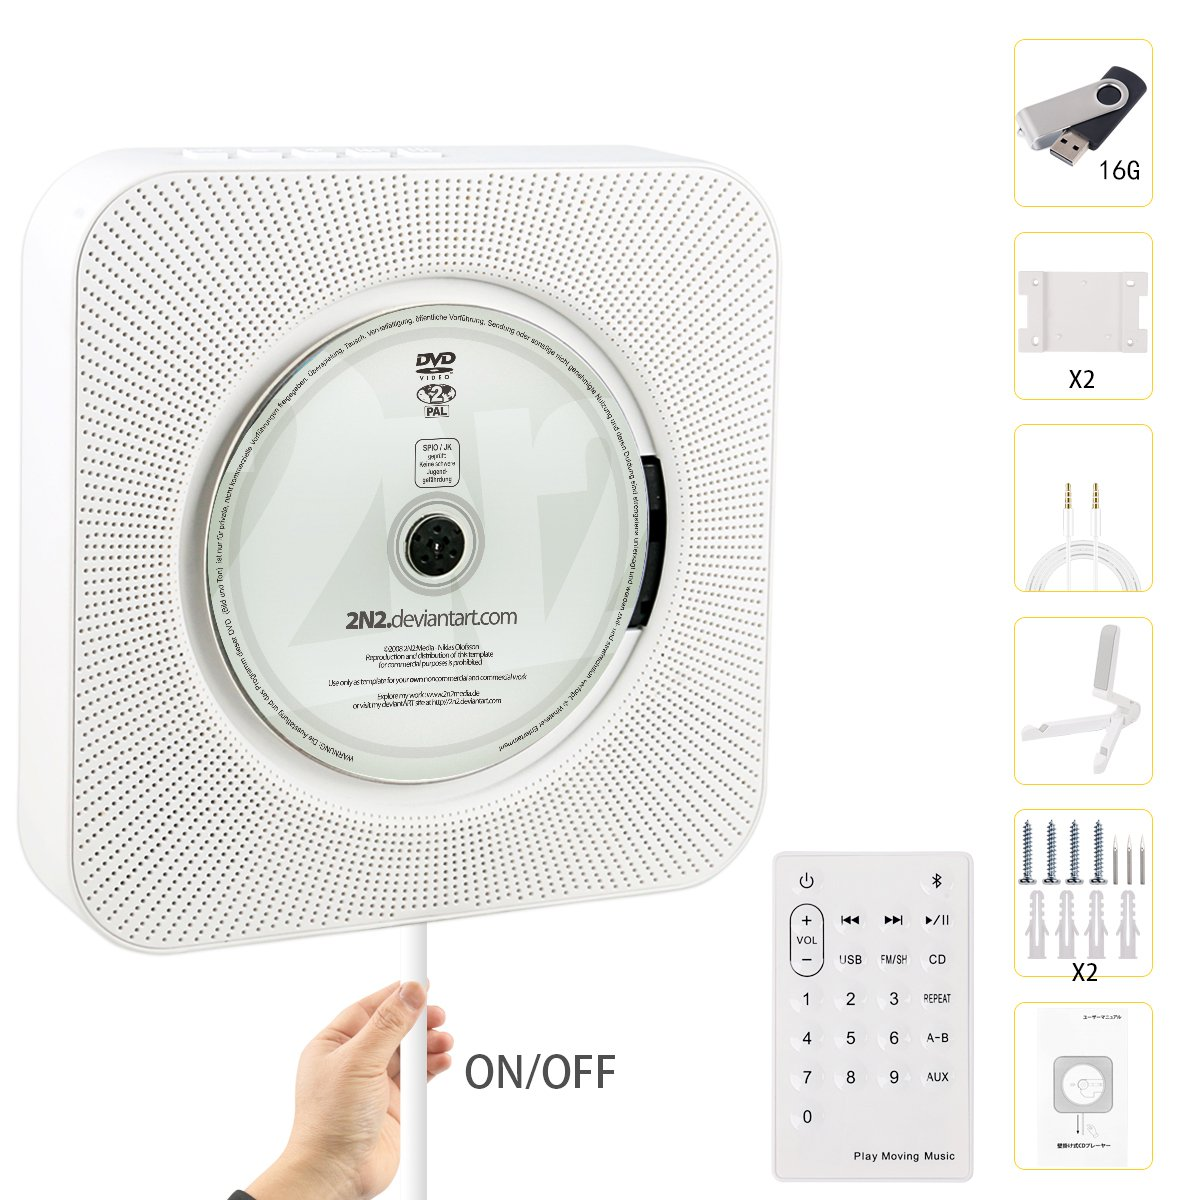 Bluetooth CD Player, Beatife Upgraded Wall Mounted Multipurpose Player HiFi Speaker Full-Band FM Radio with Remote Control USB Drive AUX in & 3.5mm Headphone Jack Support A-B Repeat with 16G U-Disk